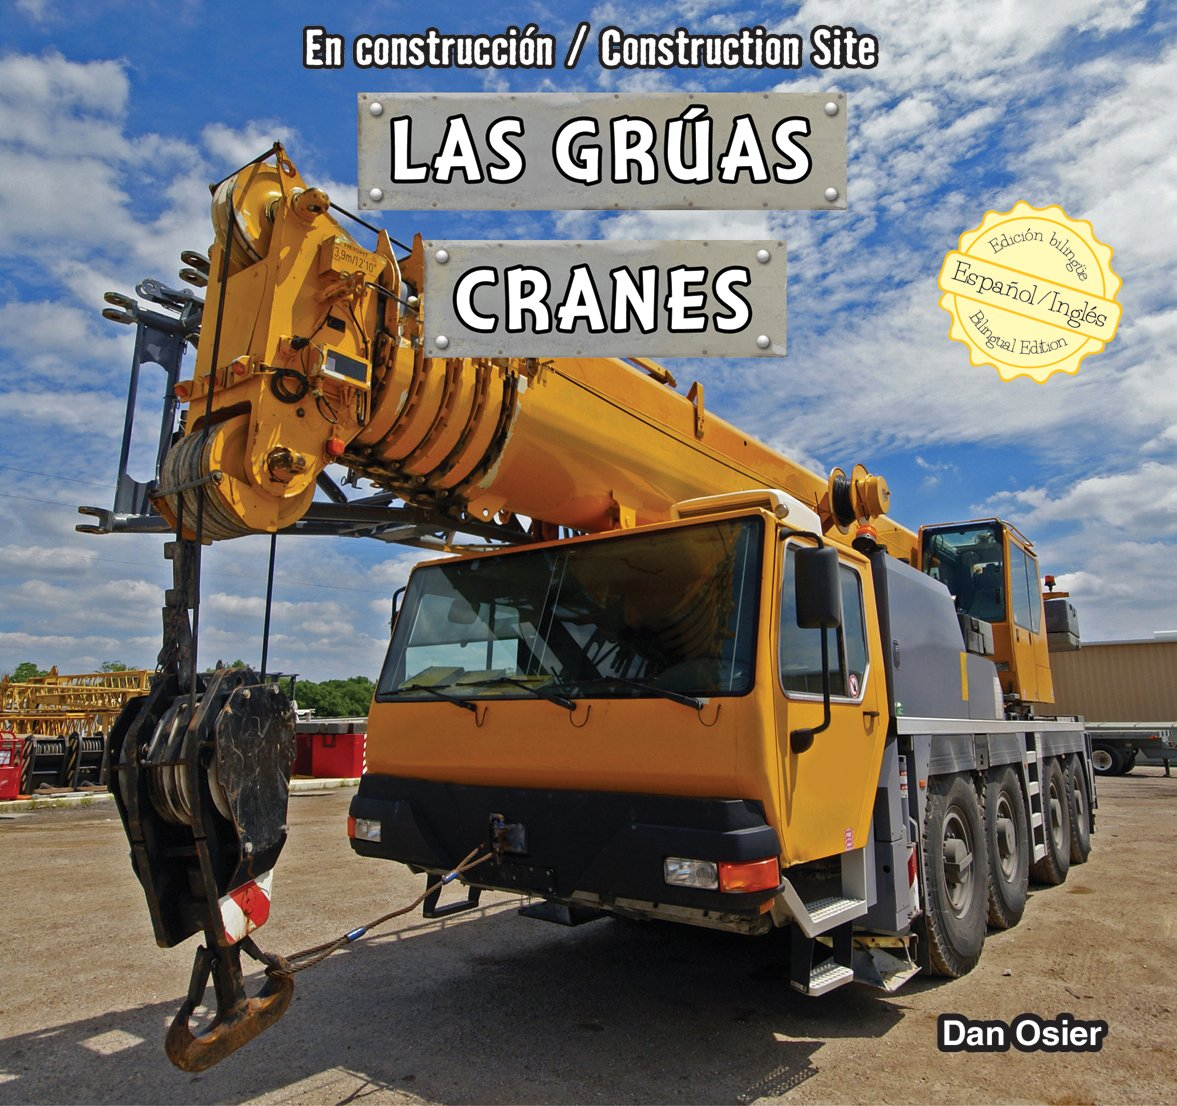 Las grúas / Cranes (En construcción / Construction Site) (Spanish and English Edition) by Powerkids Pr